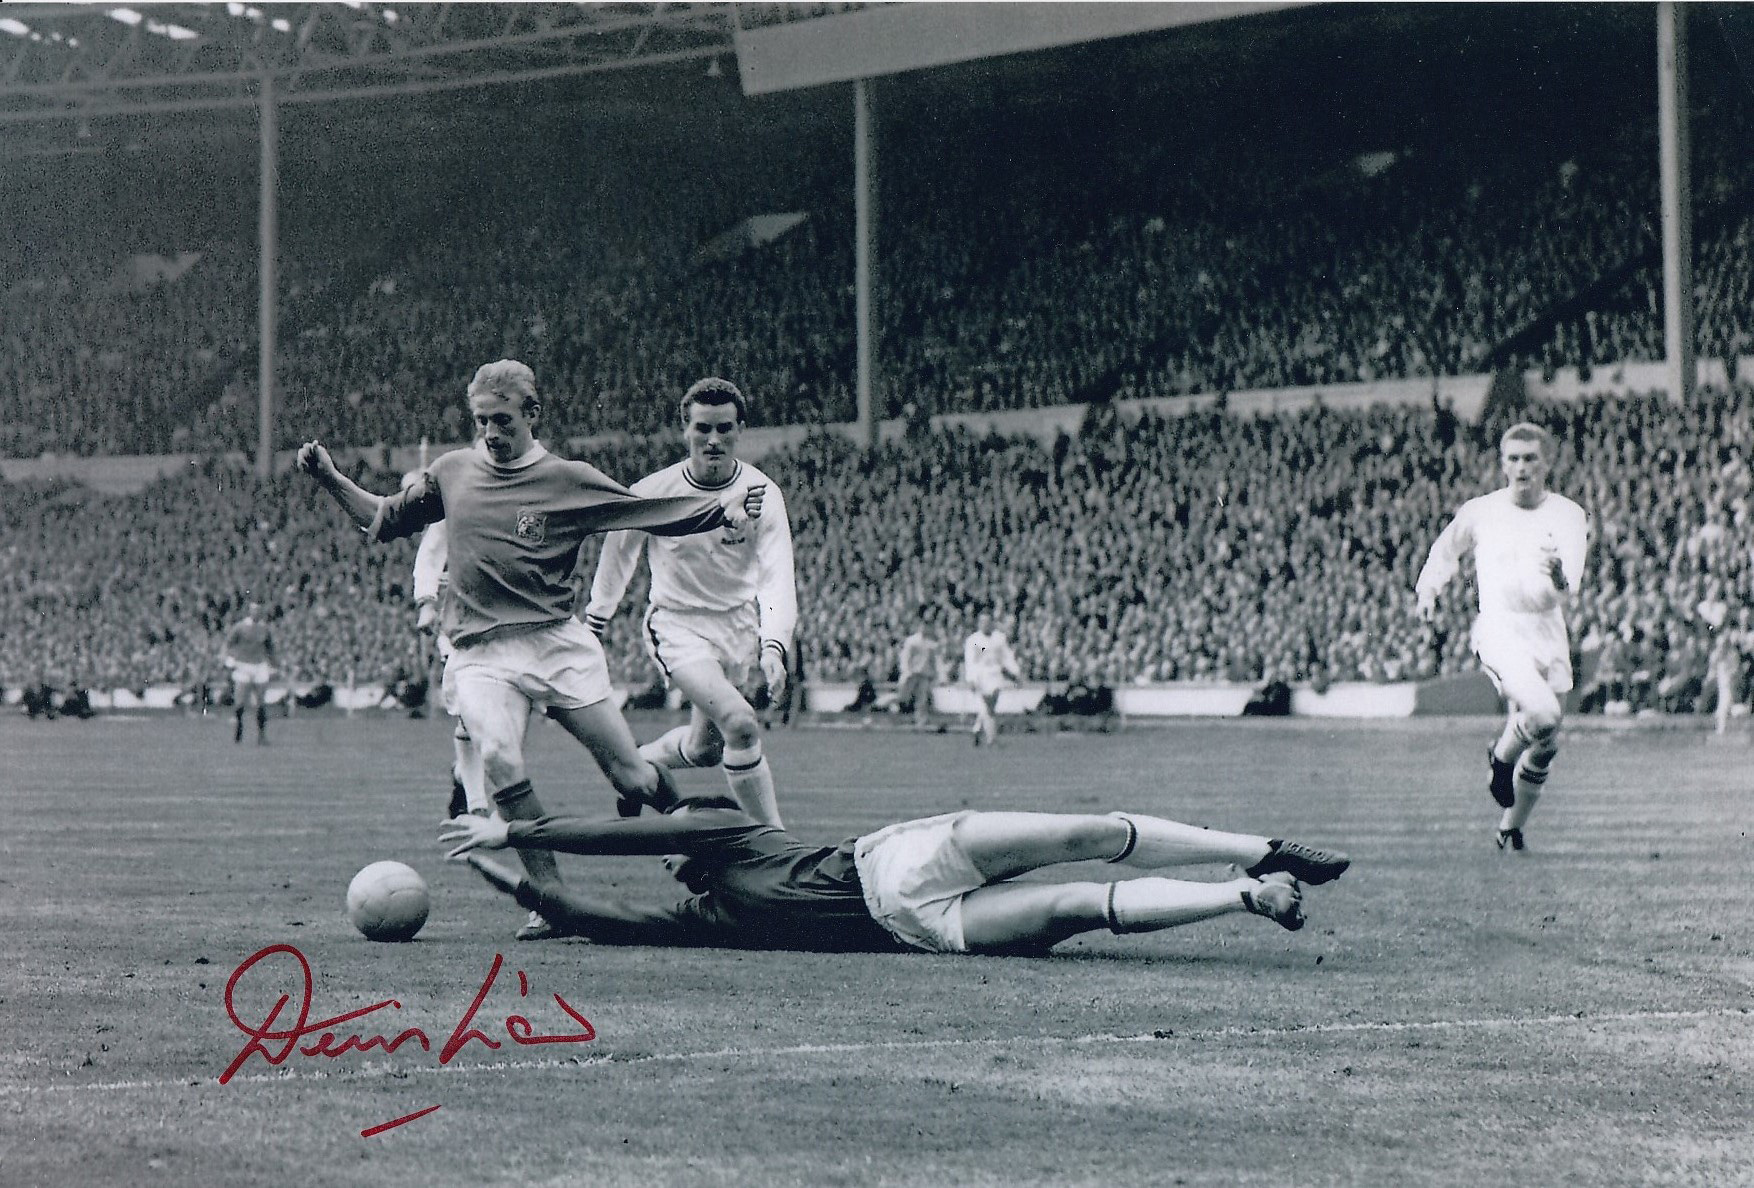 Autographed Denis Law 12 X 8 Photo B W, Depicting A Superb Image Showing Leicester City Goalkeeper